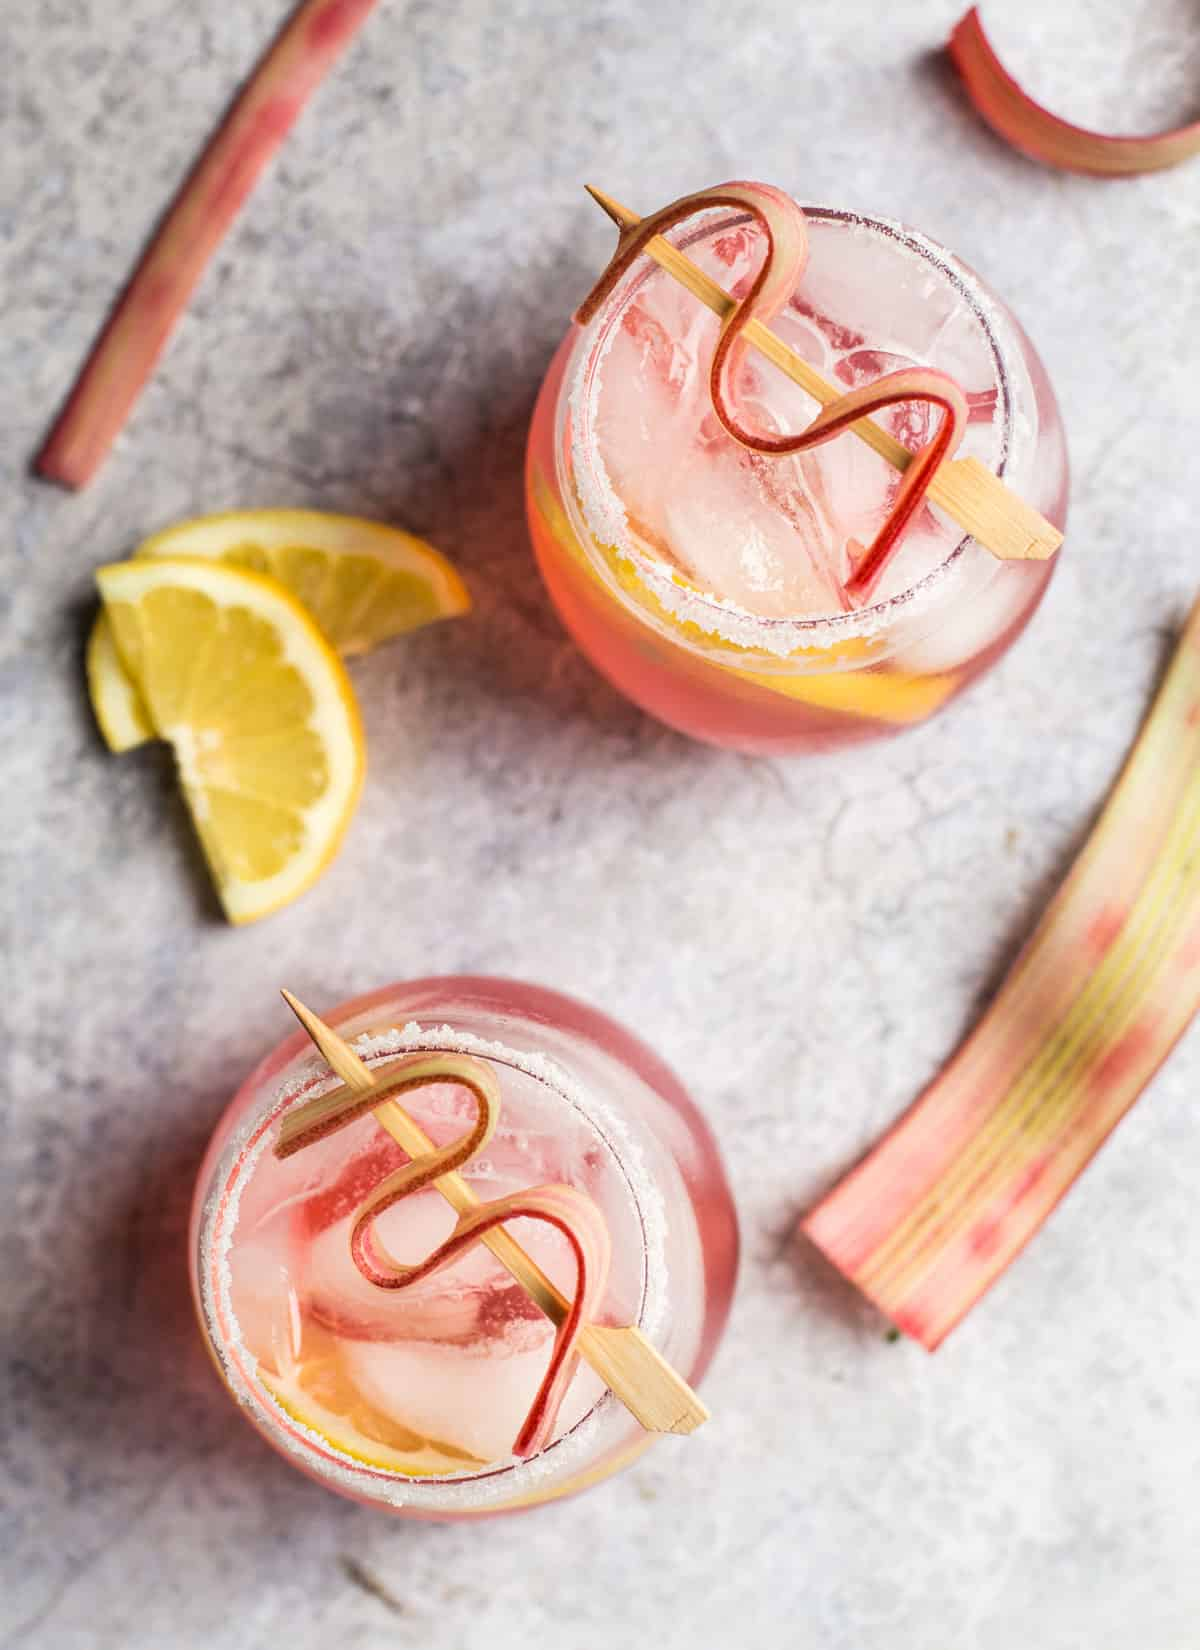 Top down view of two cocktails with rhubarb simple syrup and lemon